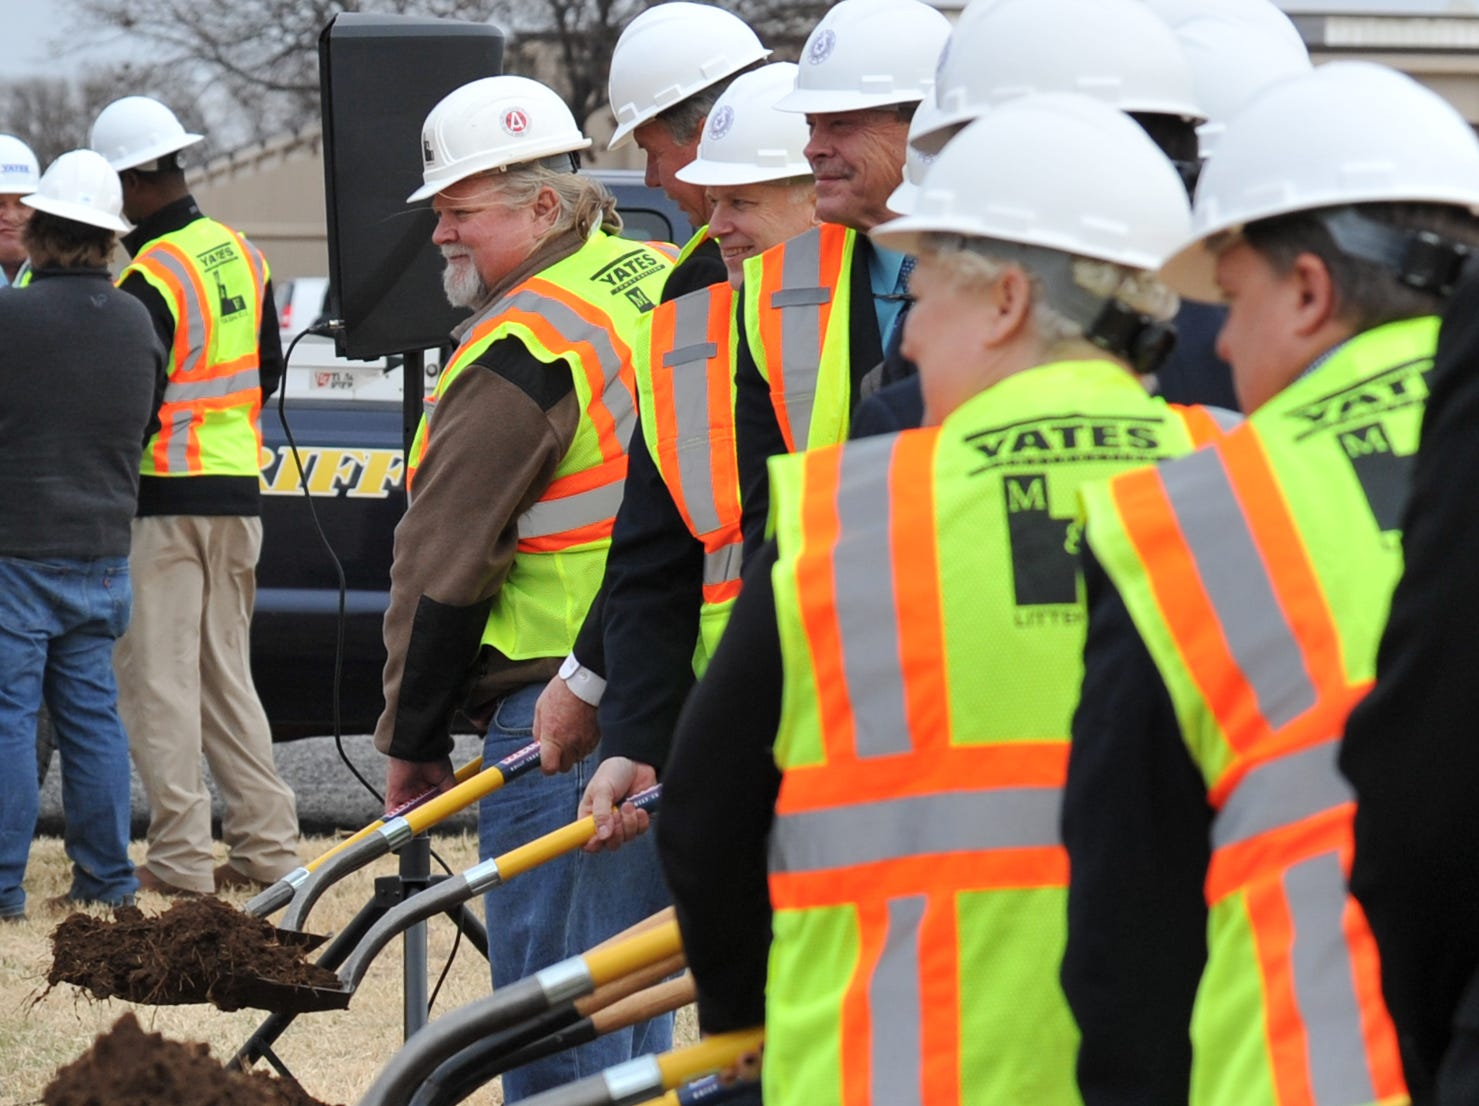 County dignitaries helped break ground Tuesday afternoon to help celebrate the building of the new law enforcement center that will be constructed next to the Sprague Annex.